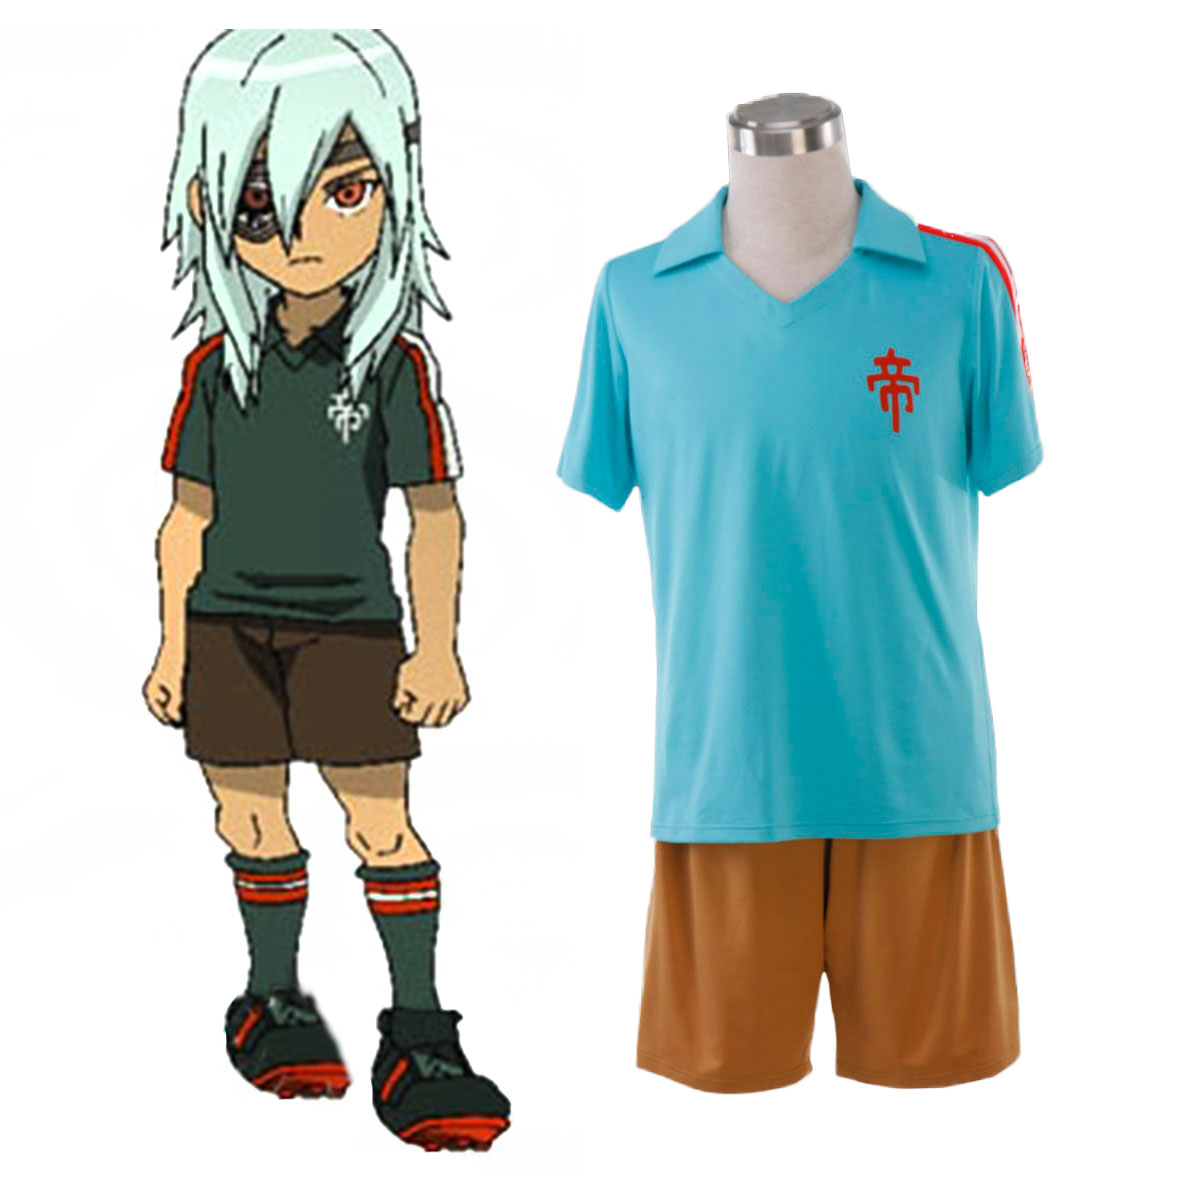 Inazuma Eleven Teikoku Summer Soccer Jersey 1 Cosplay Costumes AU